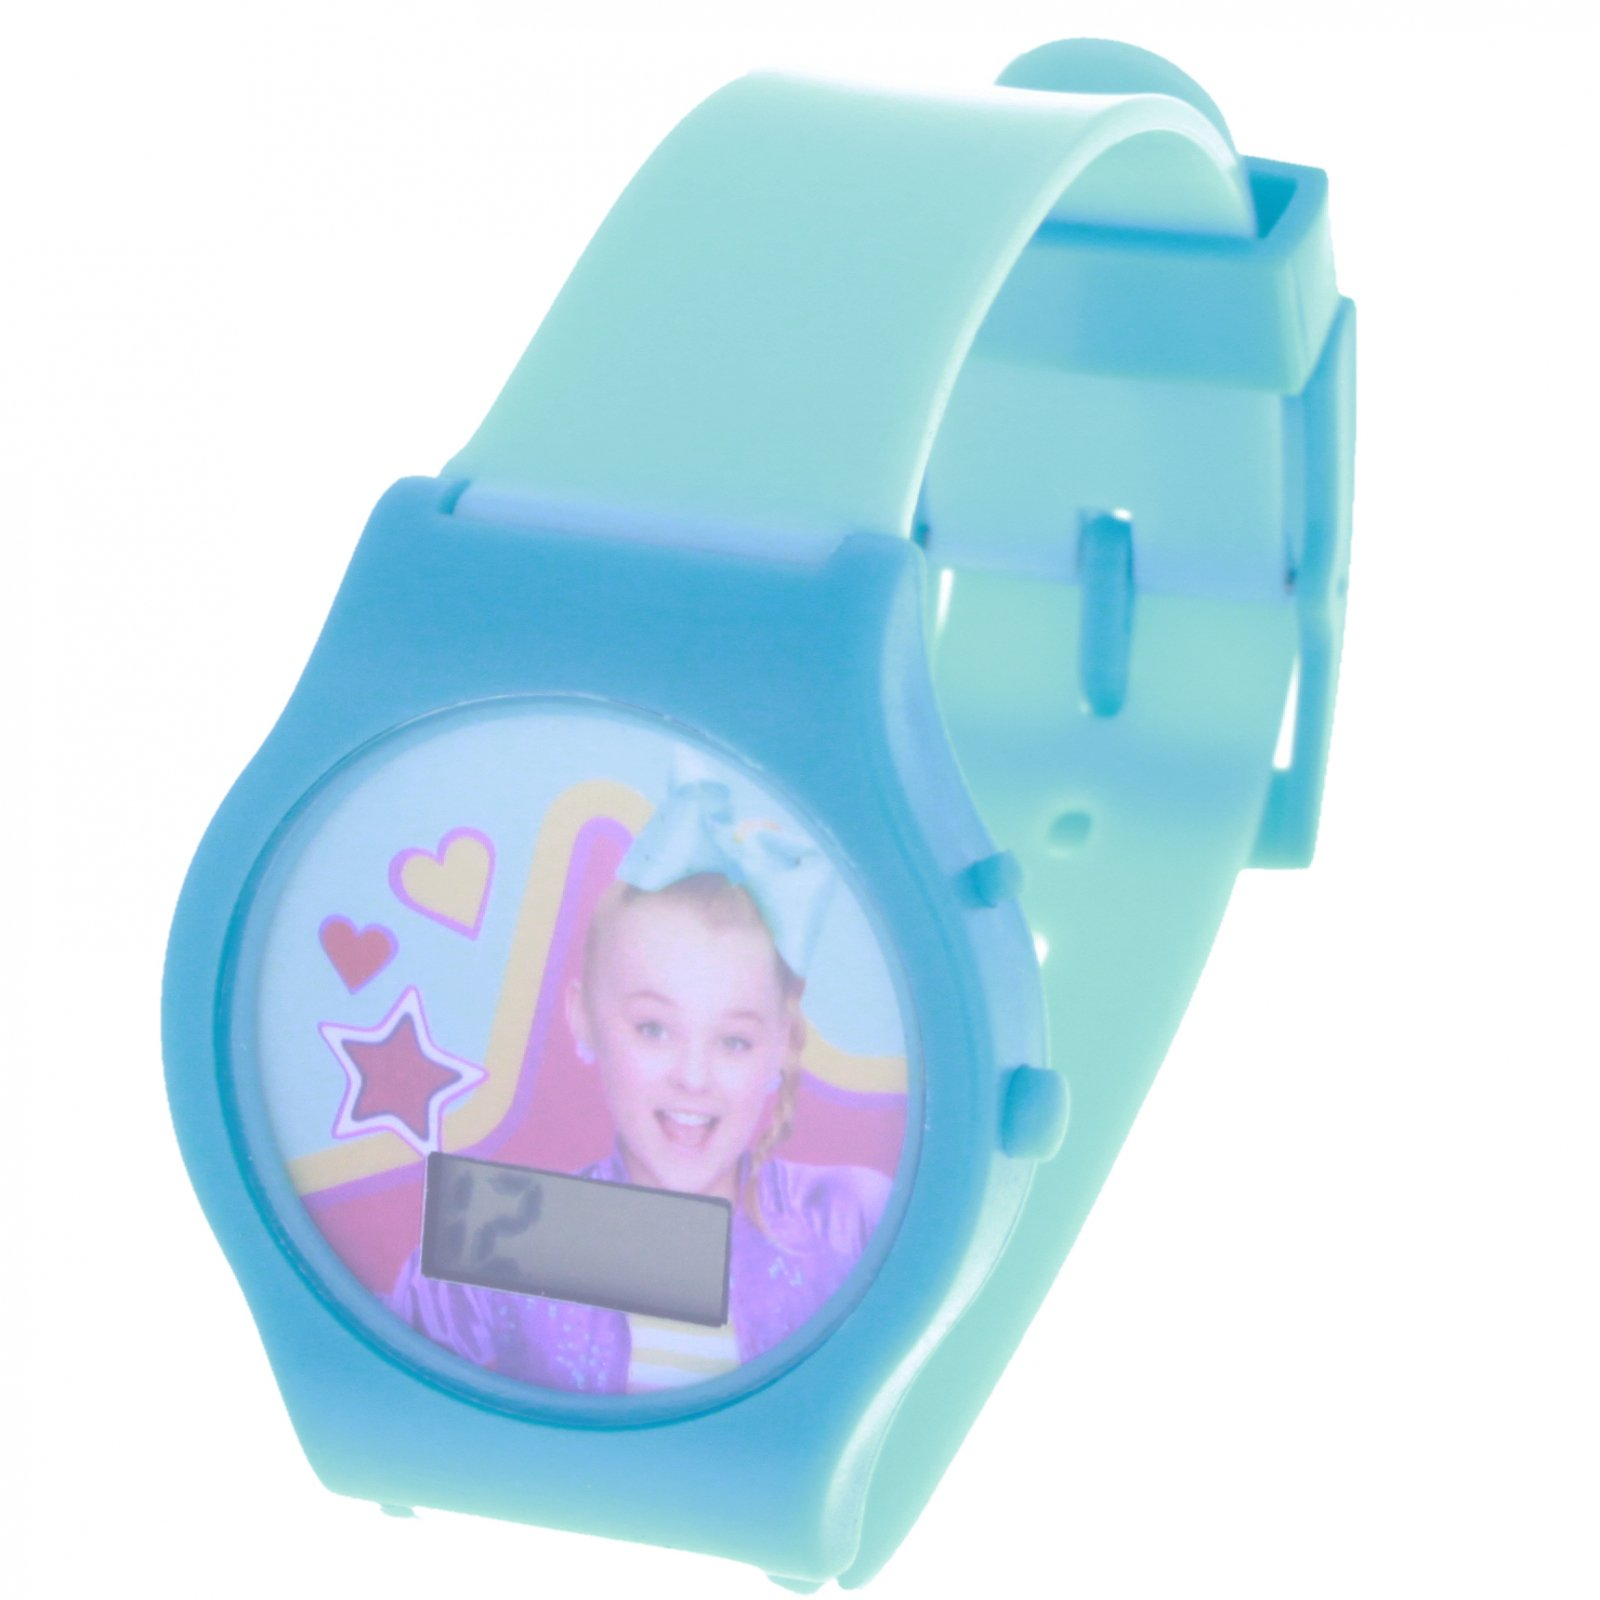 Nickelodeon JoJo Siwa LCD Digital Wrist Watch and Timer Blue